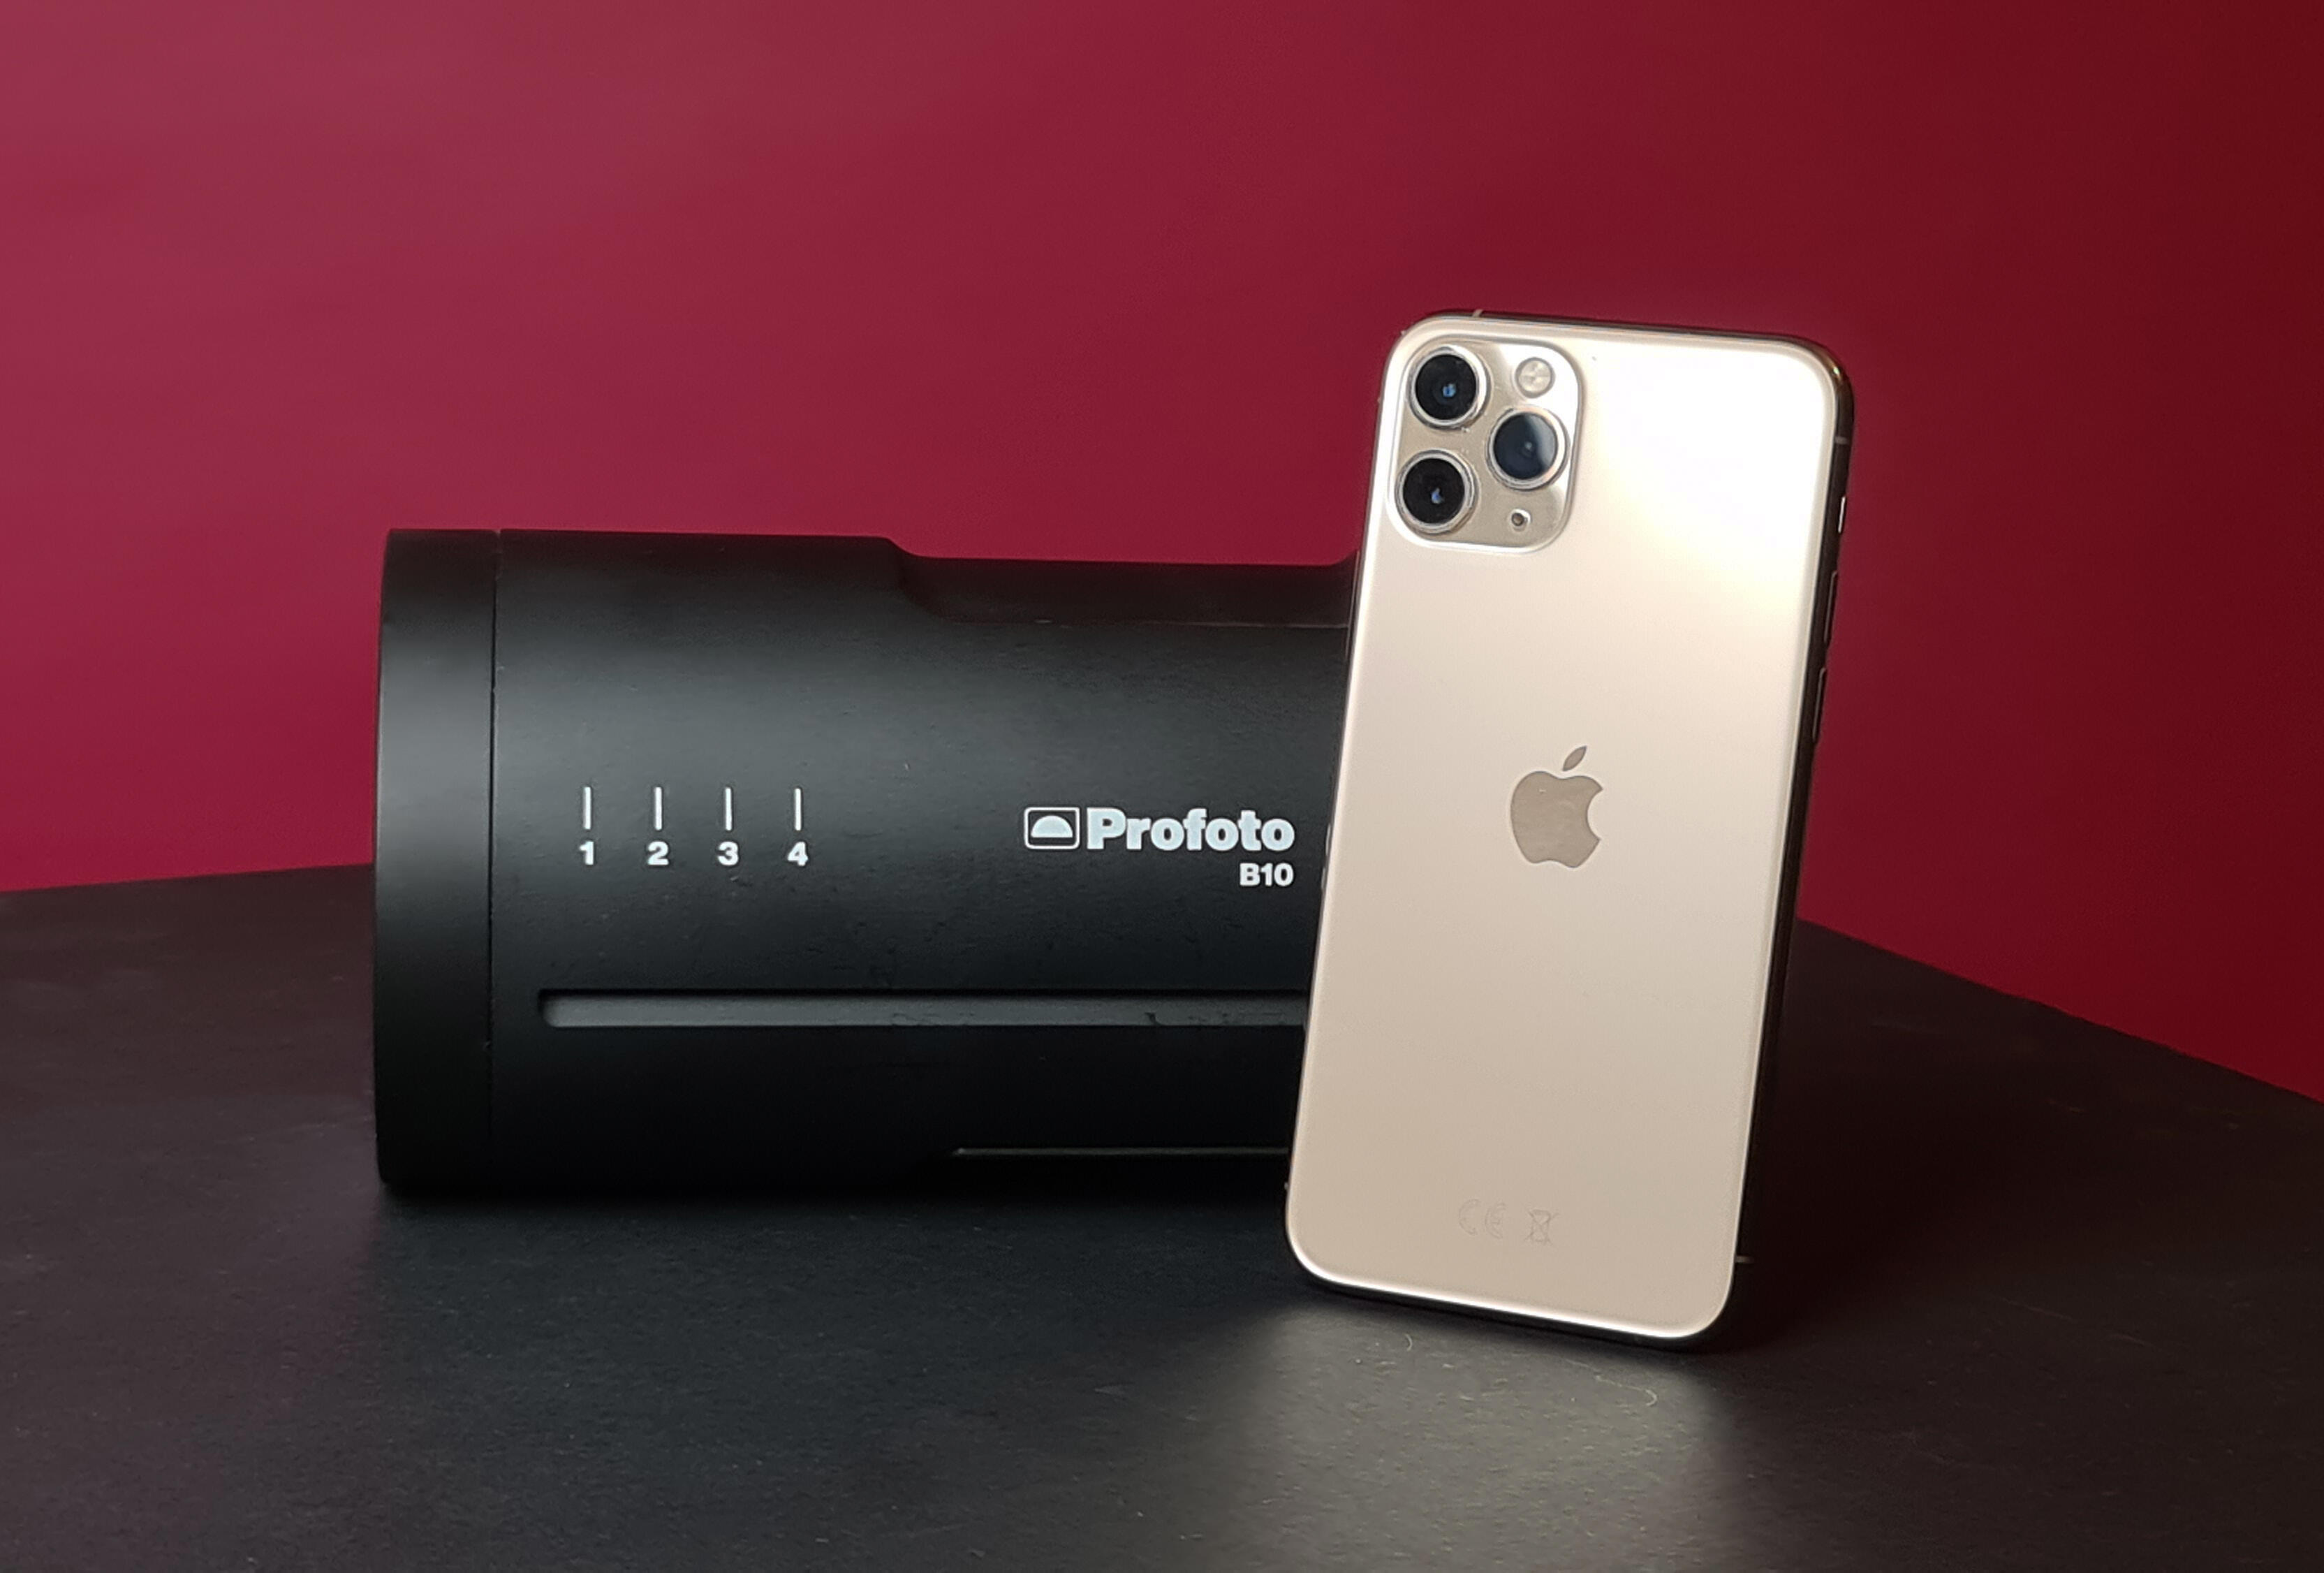 iPhone photo trick: Prepare to be amazed by the difference a flash can make